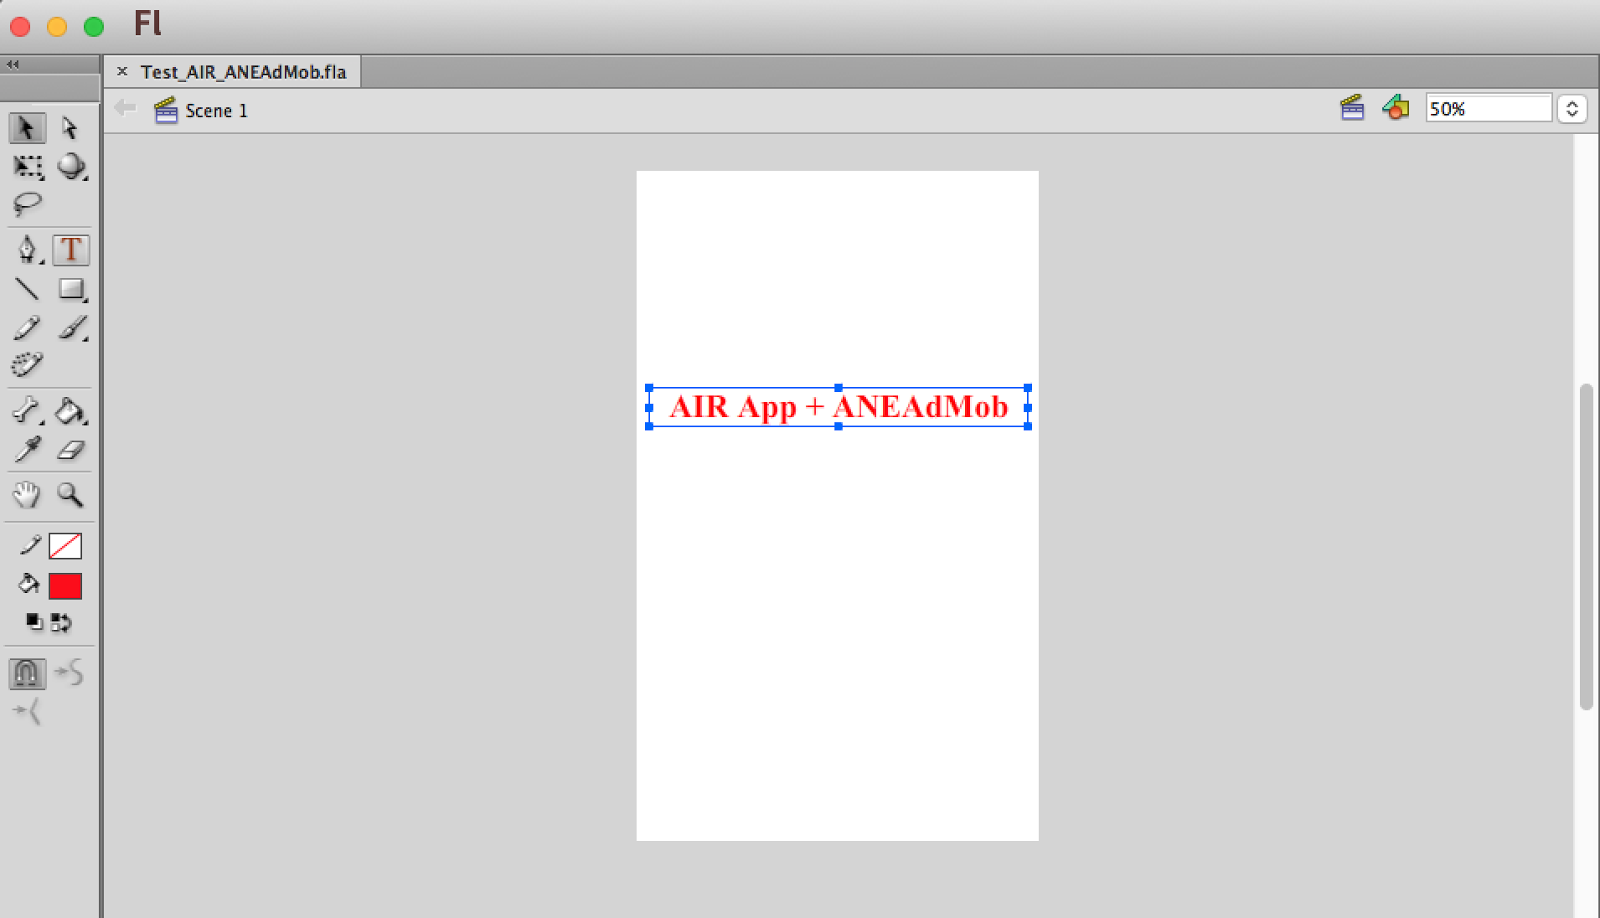 Adobe Flash Cs6 Air How To Integrate Admob Banner For Just Sampel Sample Test Aneadmobfla Then I Add Text When App Running On Screen You Dont Need It